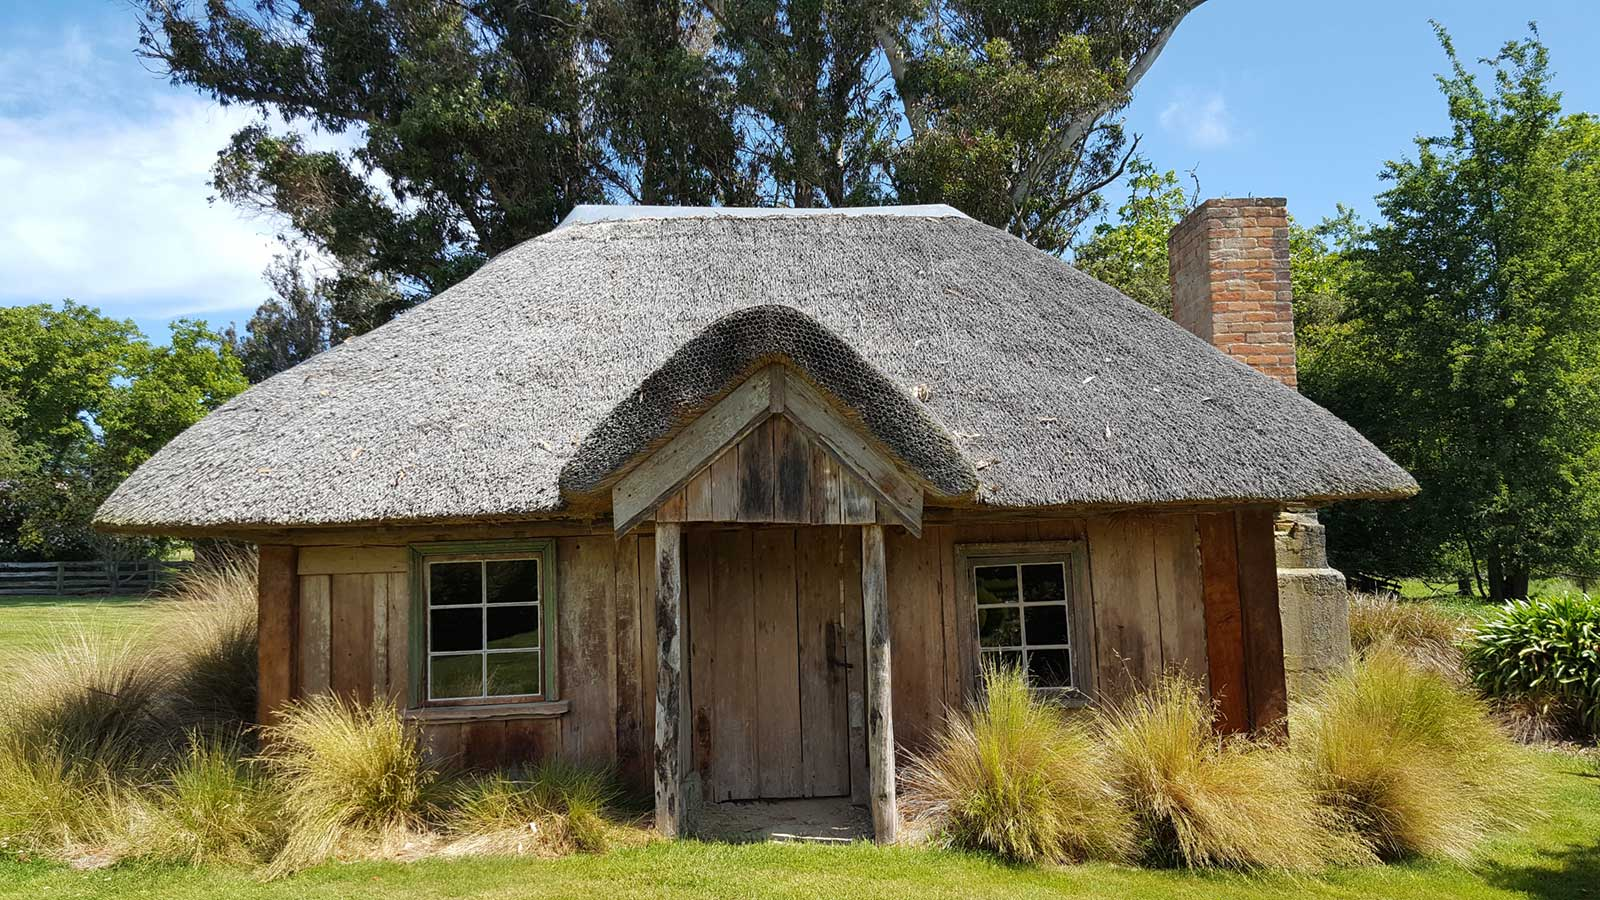 The Cuddy. Built in 1854 for Michael Studholme, owner of Te Waimate Station.